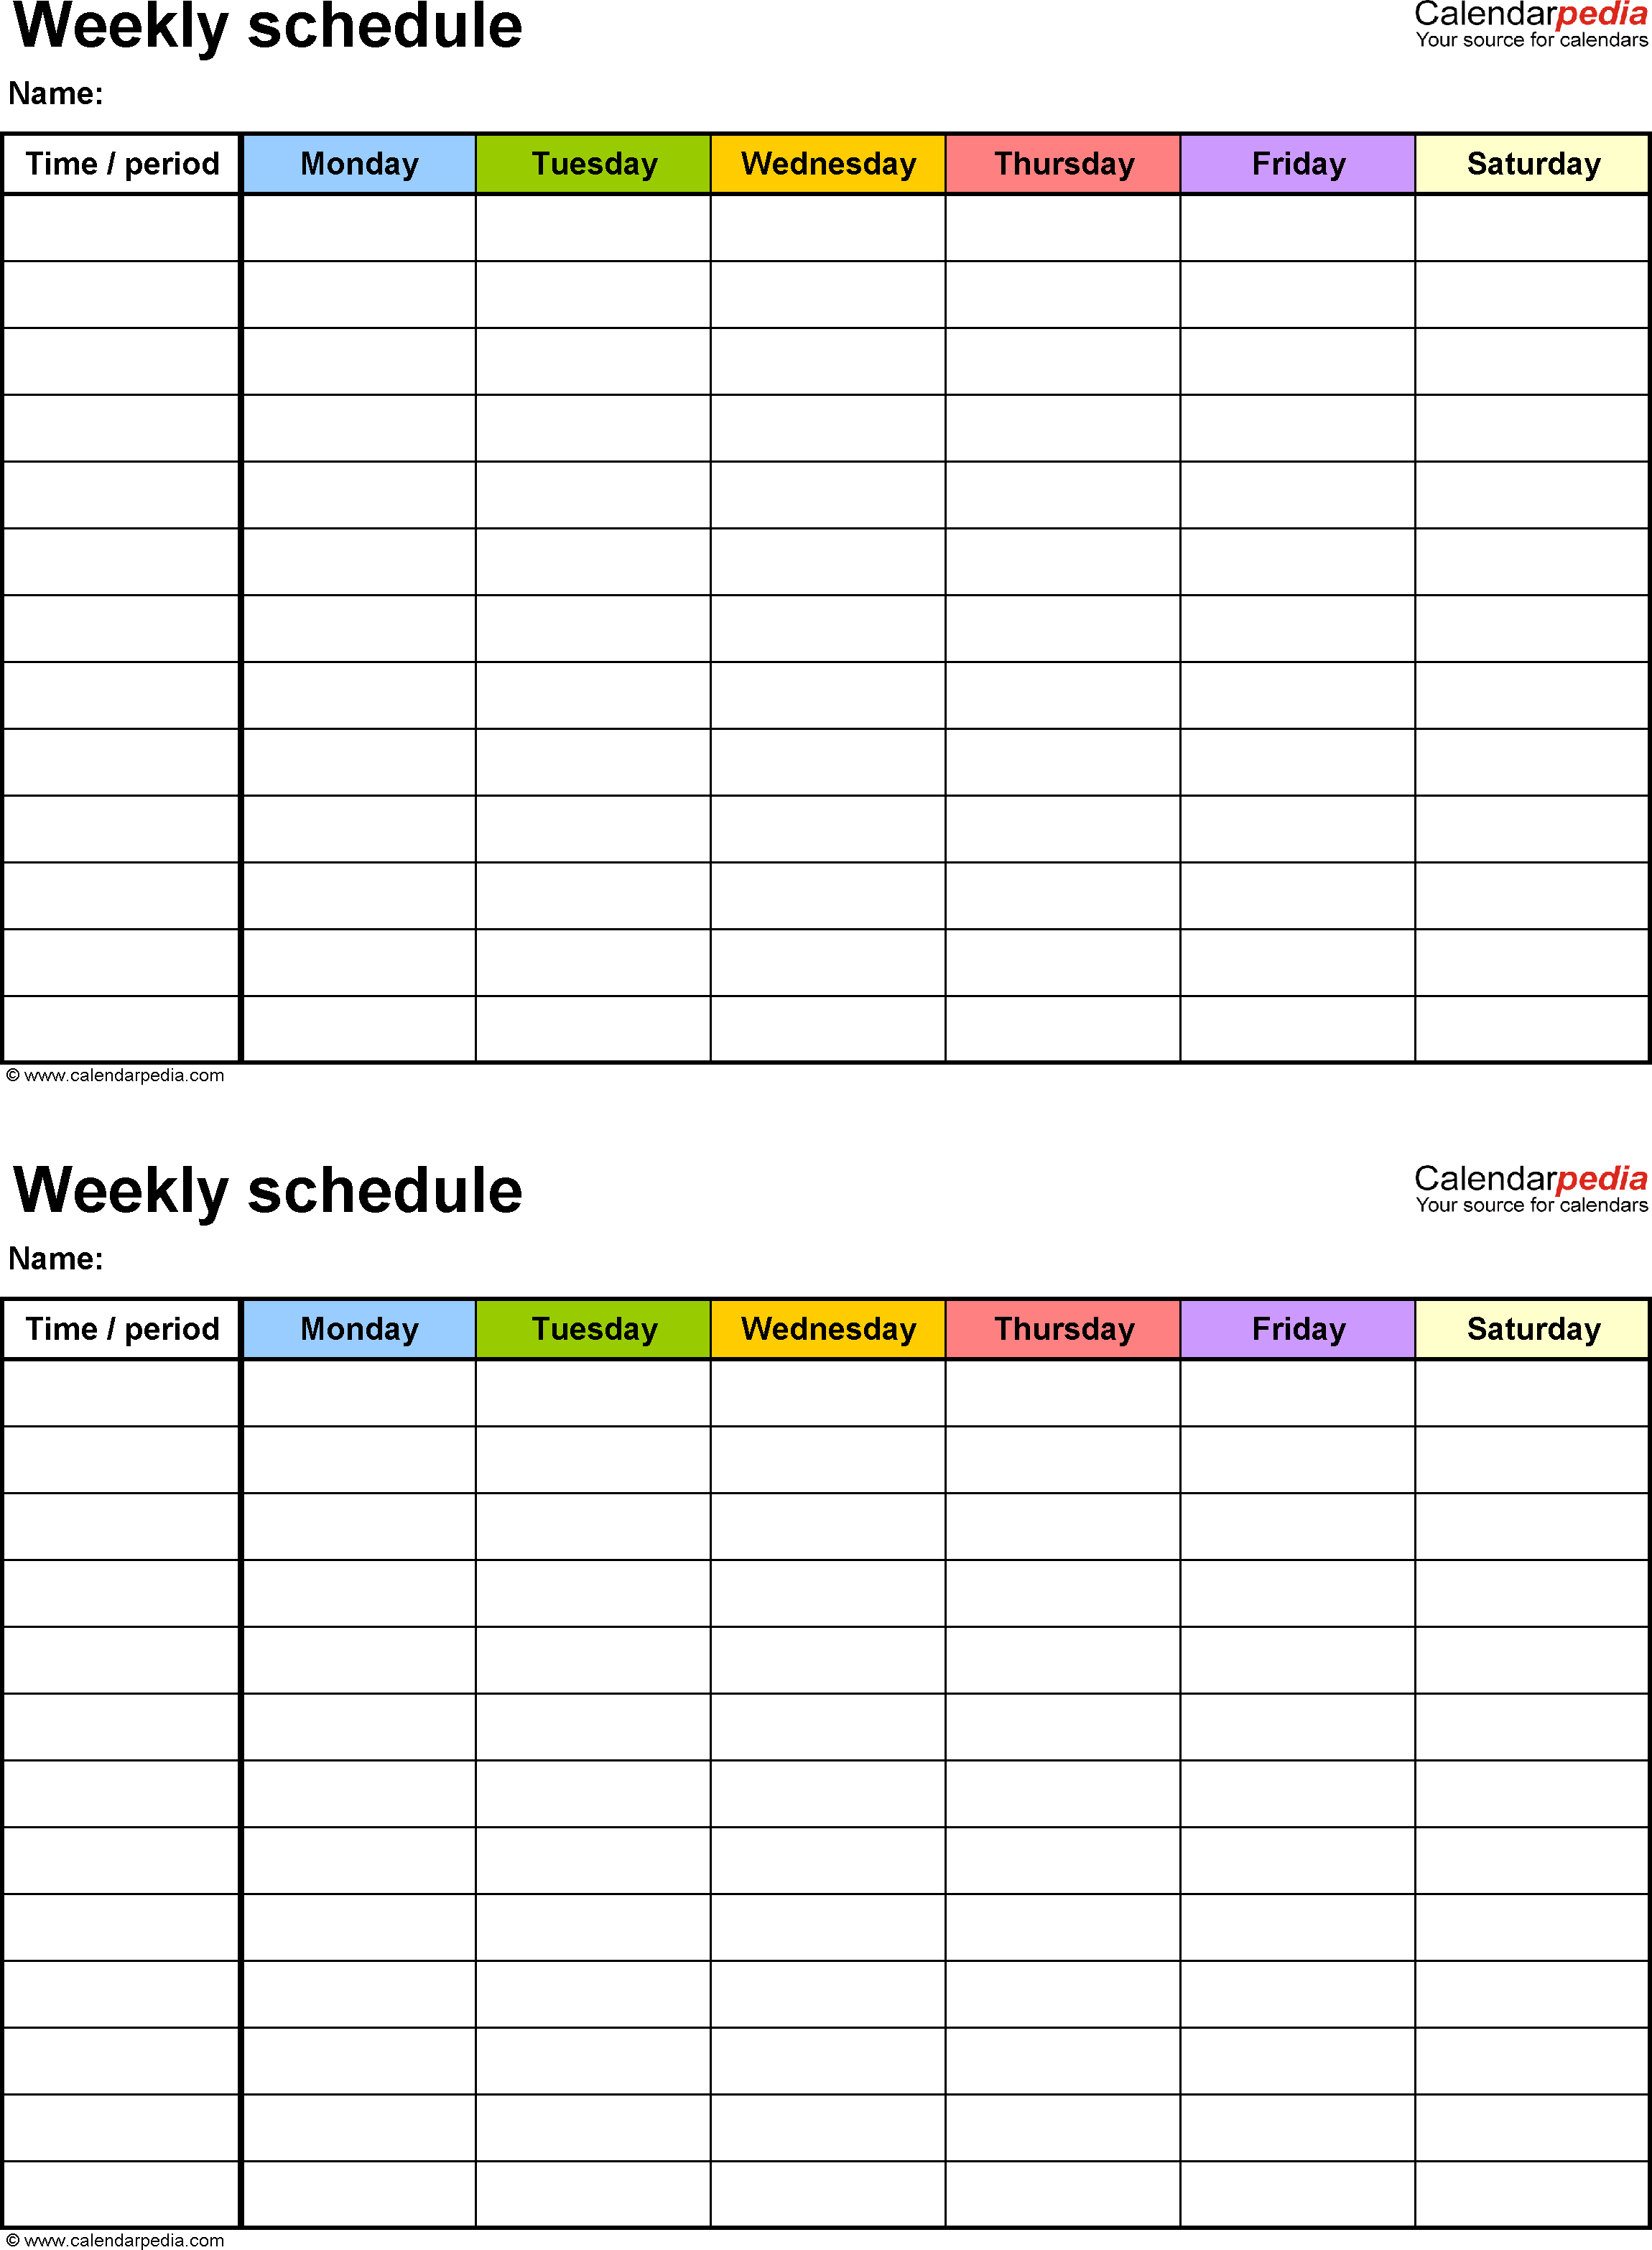 Weekly Schedule Template For Word Version 9 2 Schedules